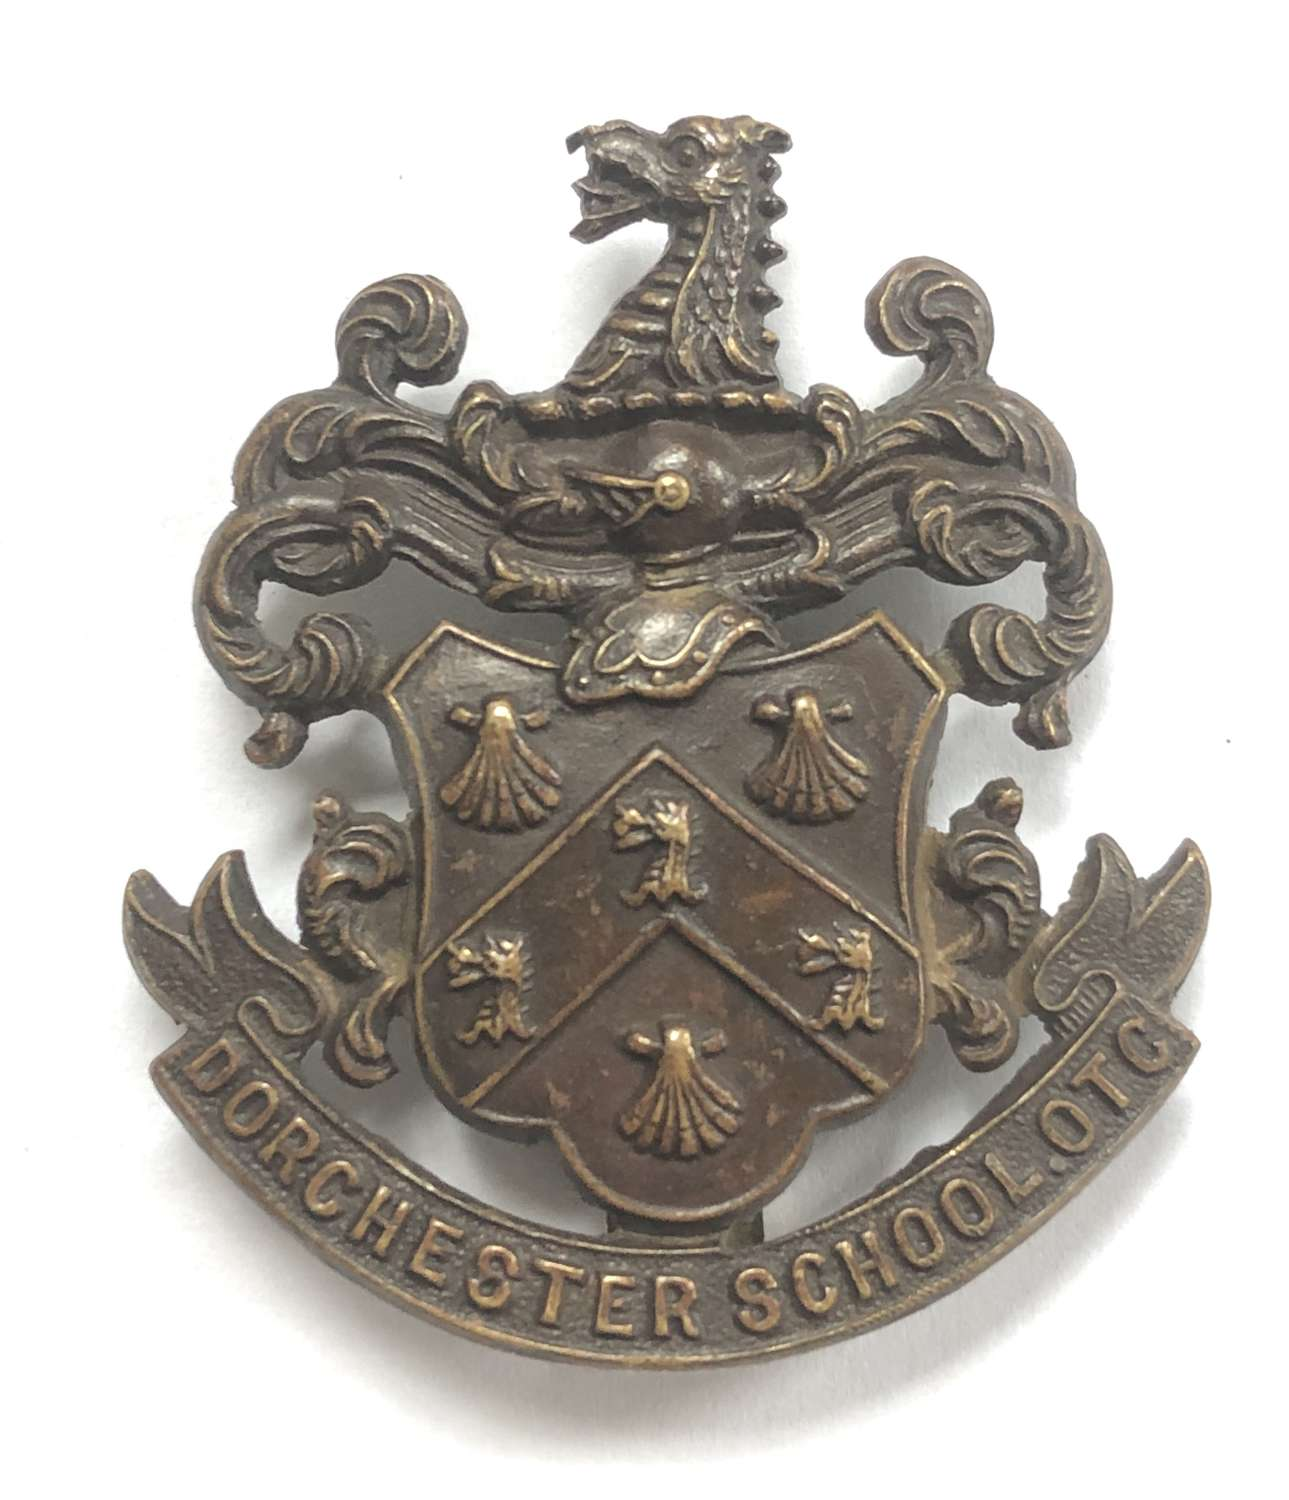 Dorchester School OTC brass cap badge